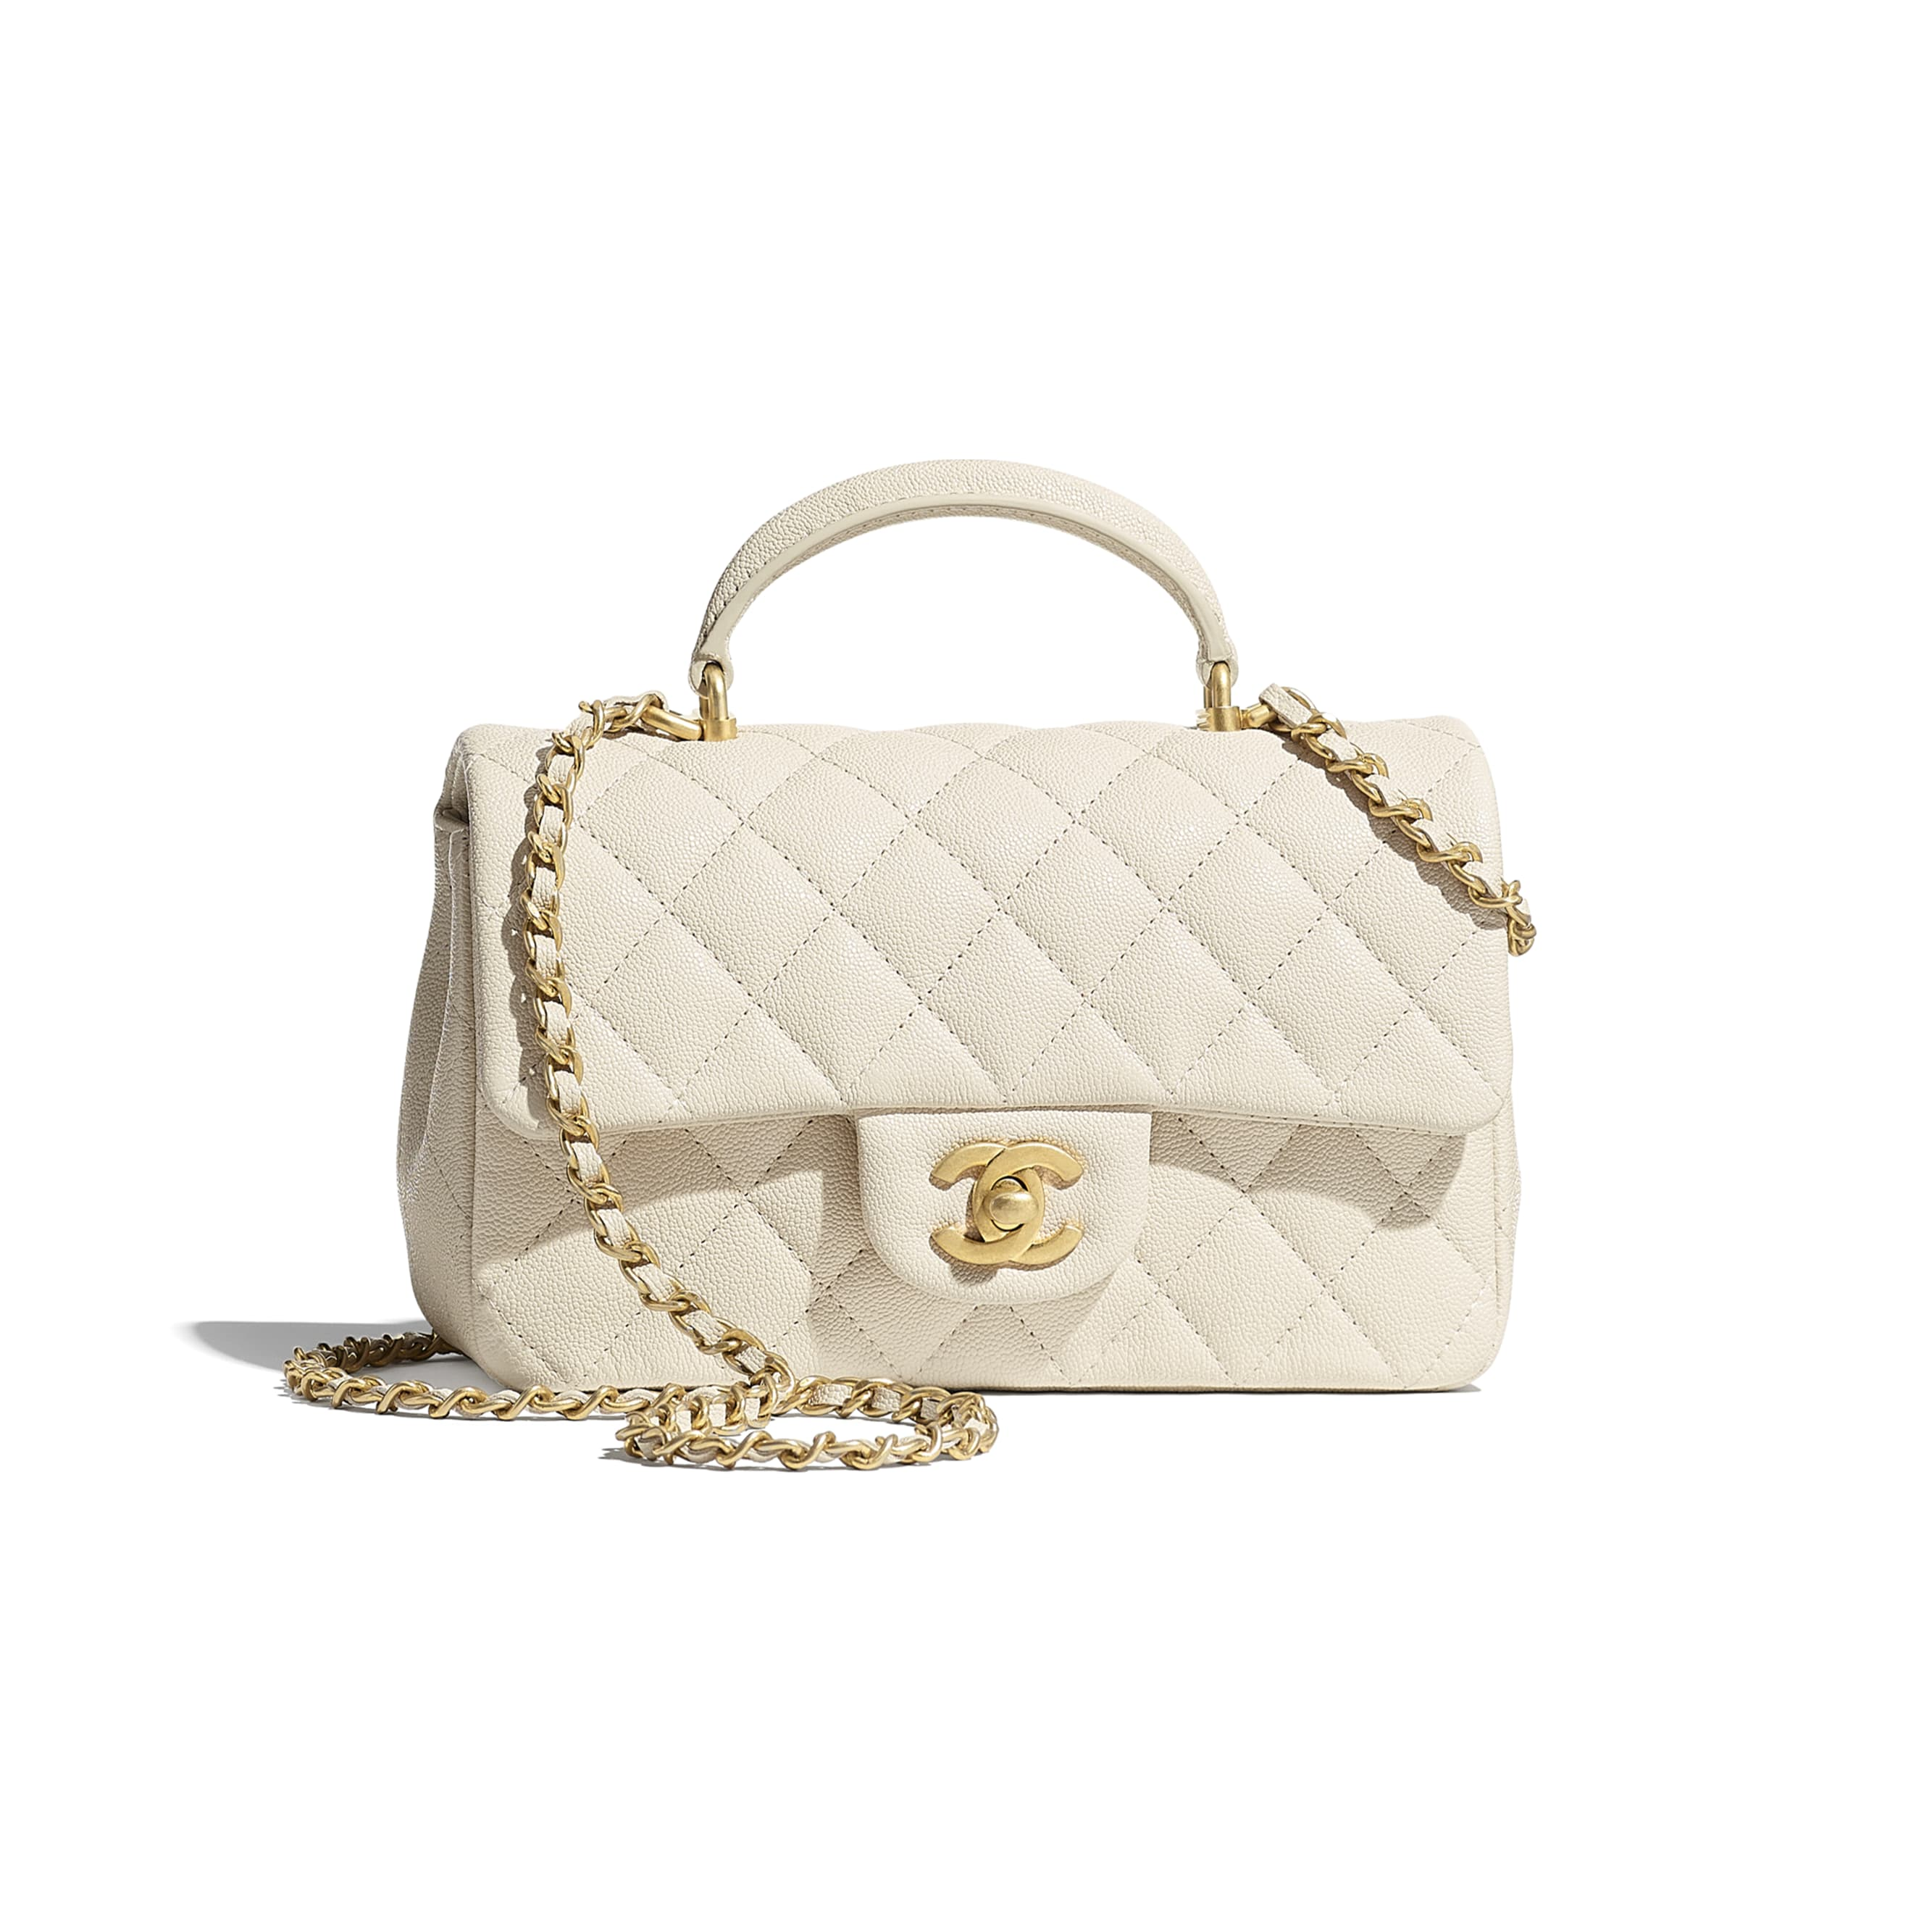 Mini Flap Bag with Top Handle - Beige - Grained Calfskin & Gold-Tone Metal - CHANEL - Default view - see standard sized version